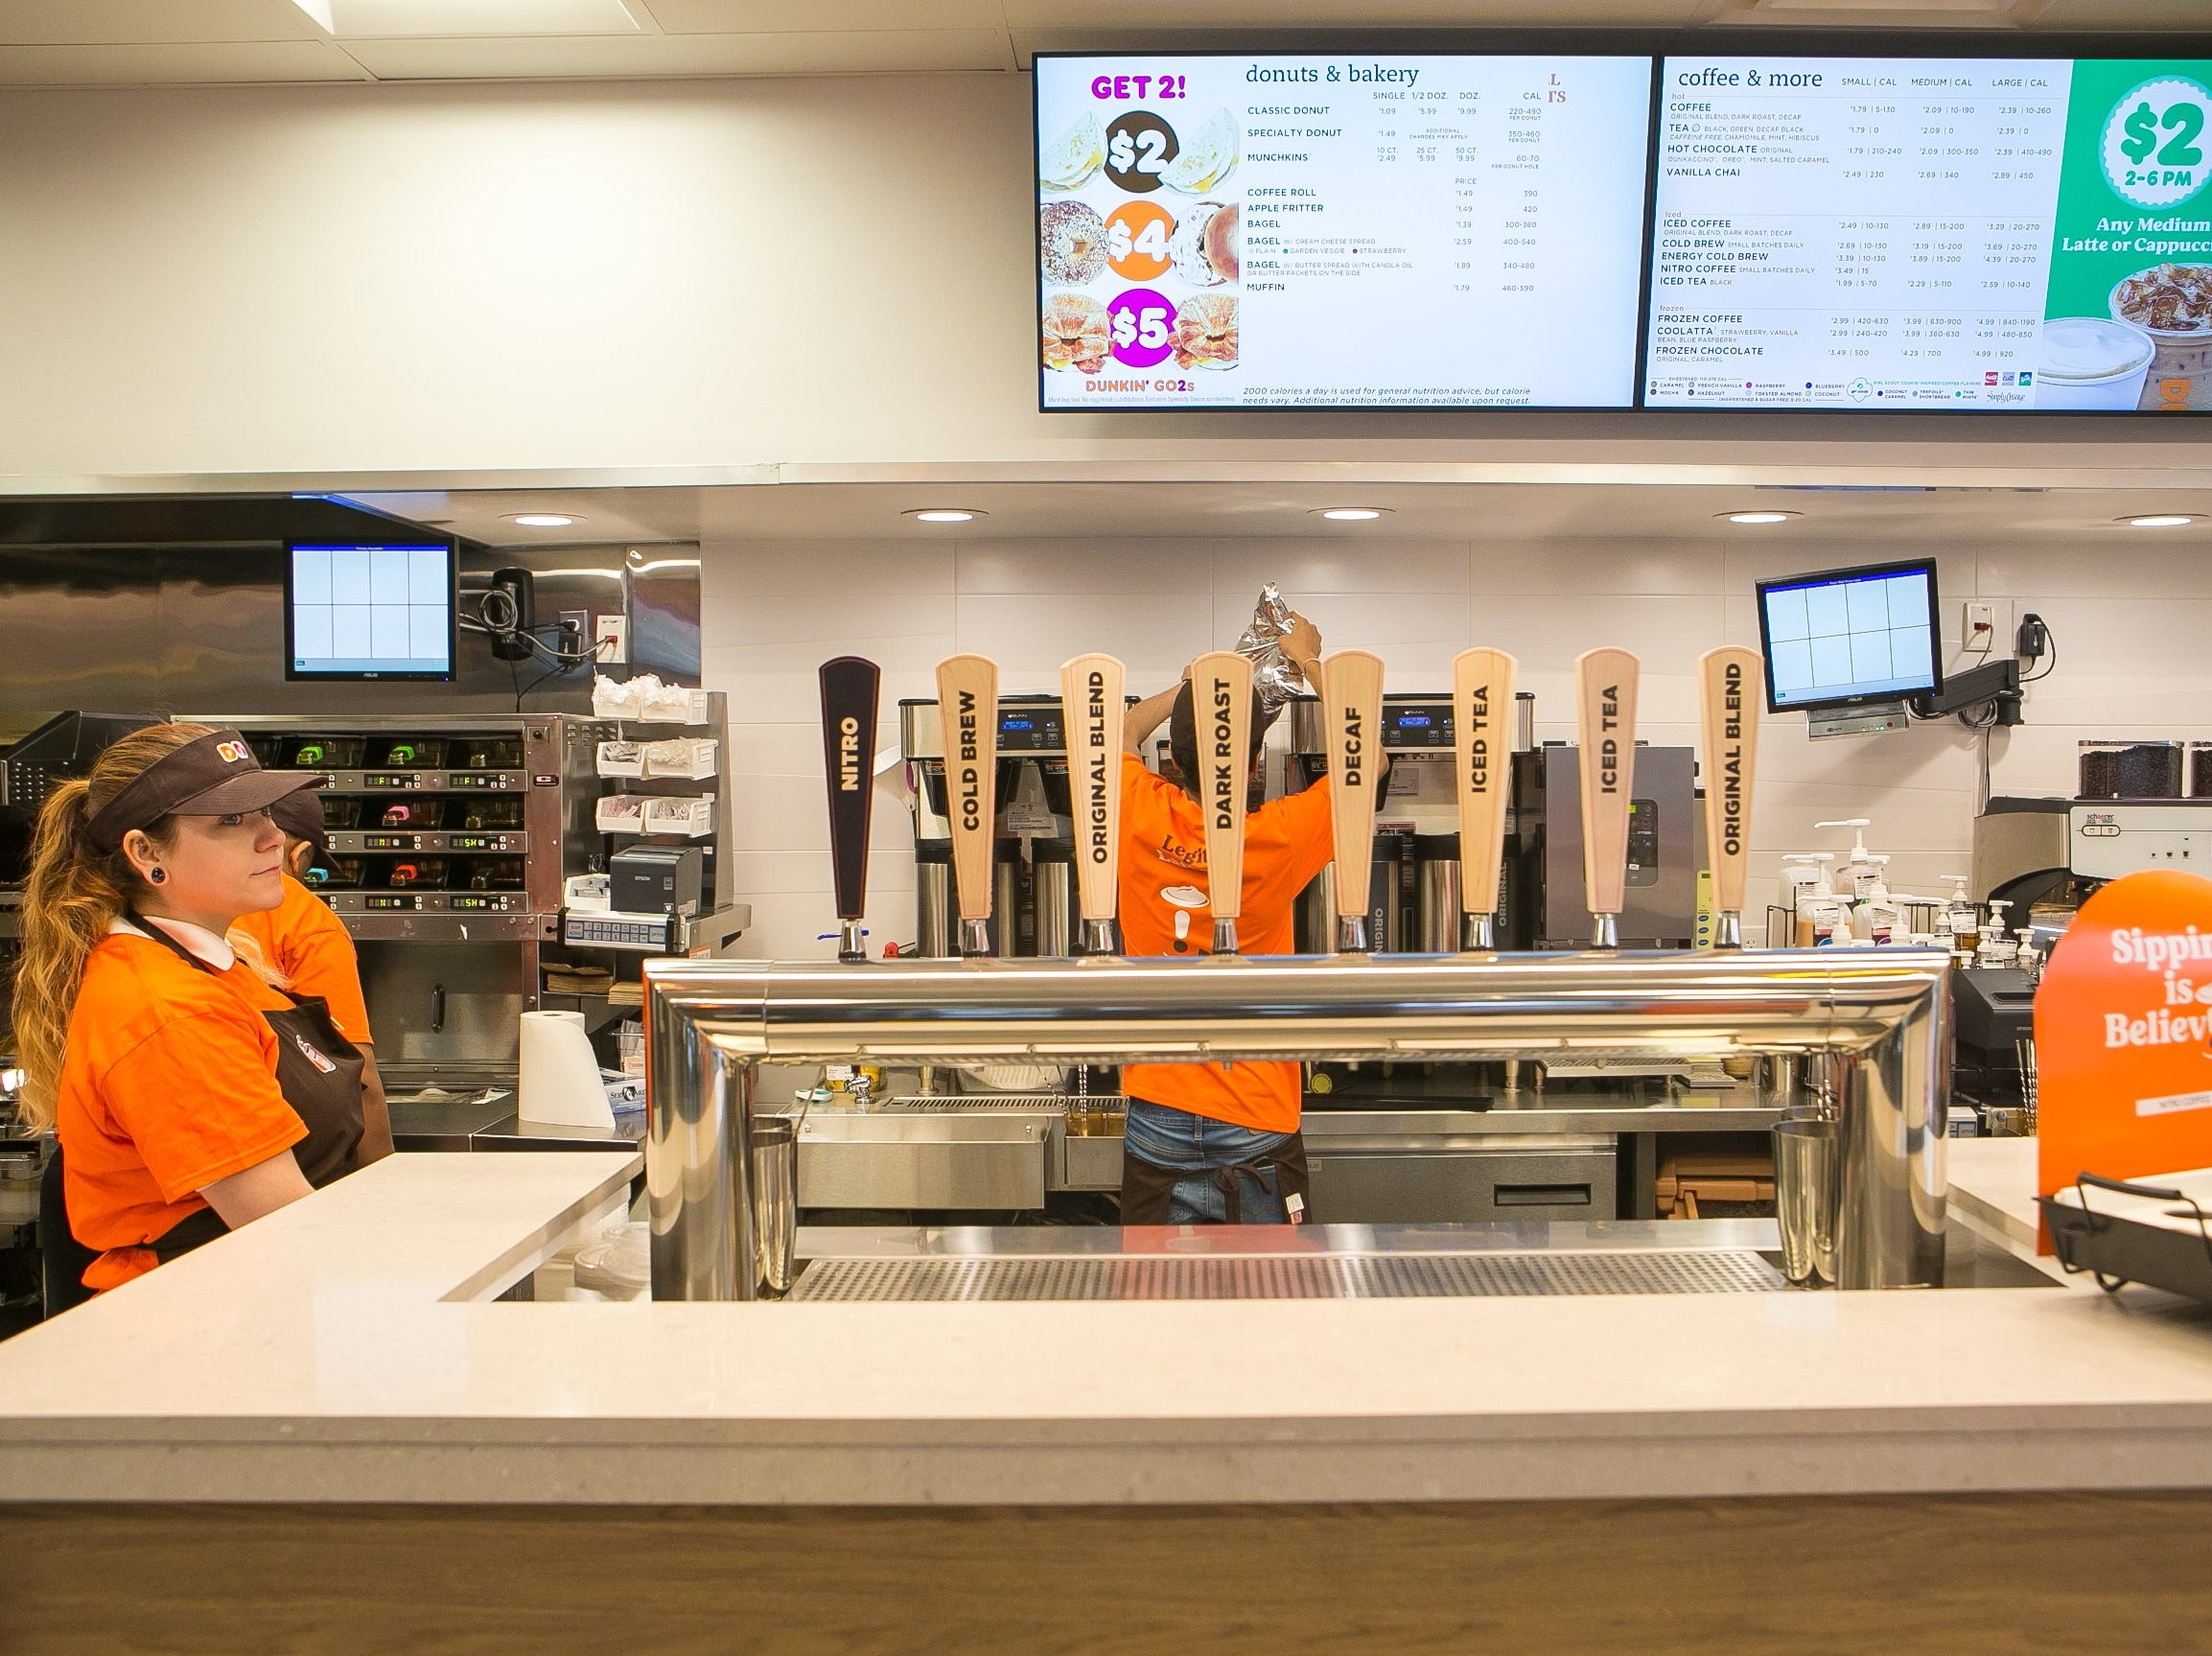 Ashley Keaton stands next to the new tap area that serves cold drinks. The Delaware store is one of about 60 new and remodeled Dunkin' restaurants with new designs and the new Dunkin' brand name.